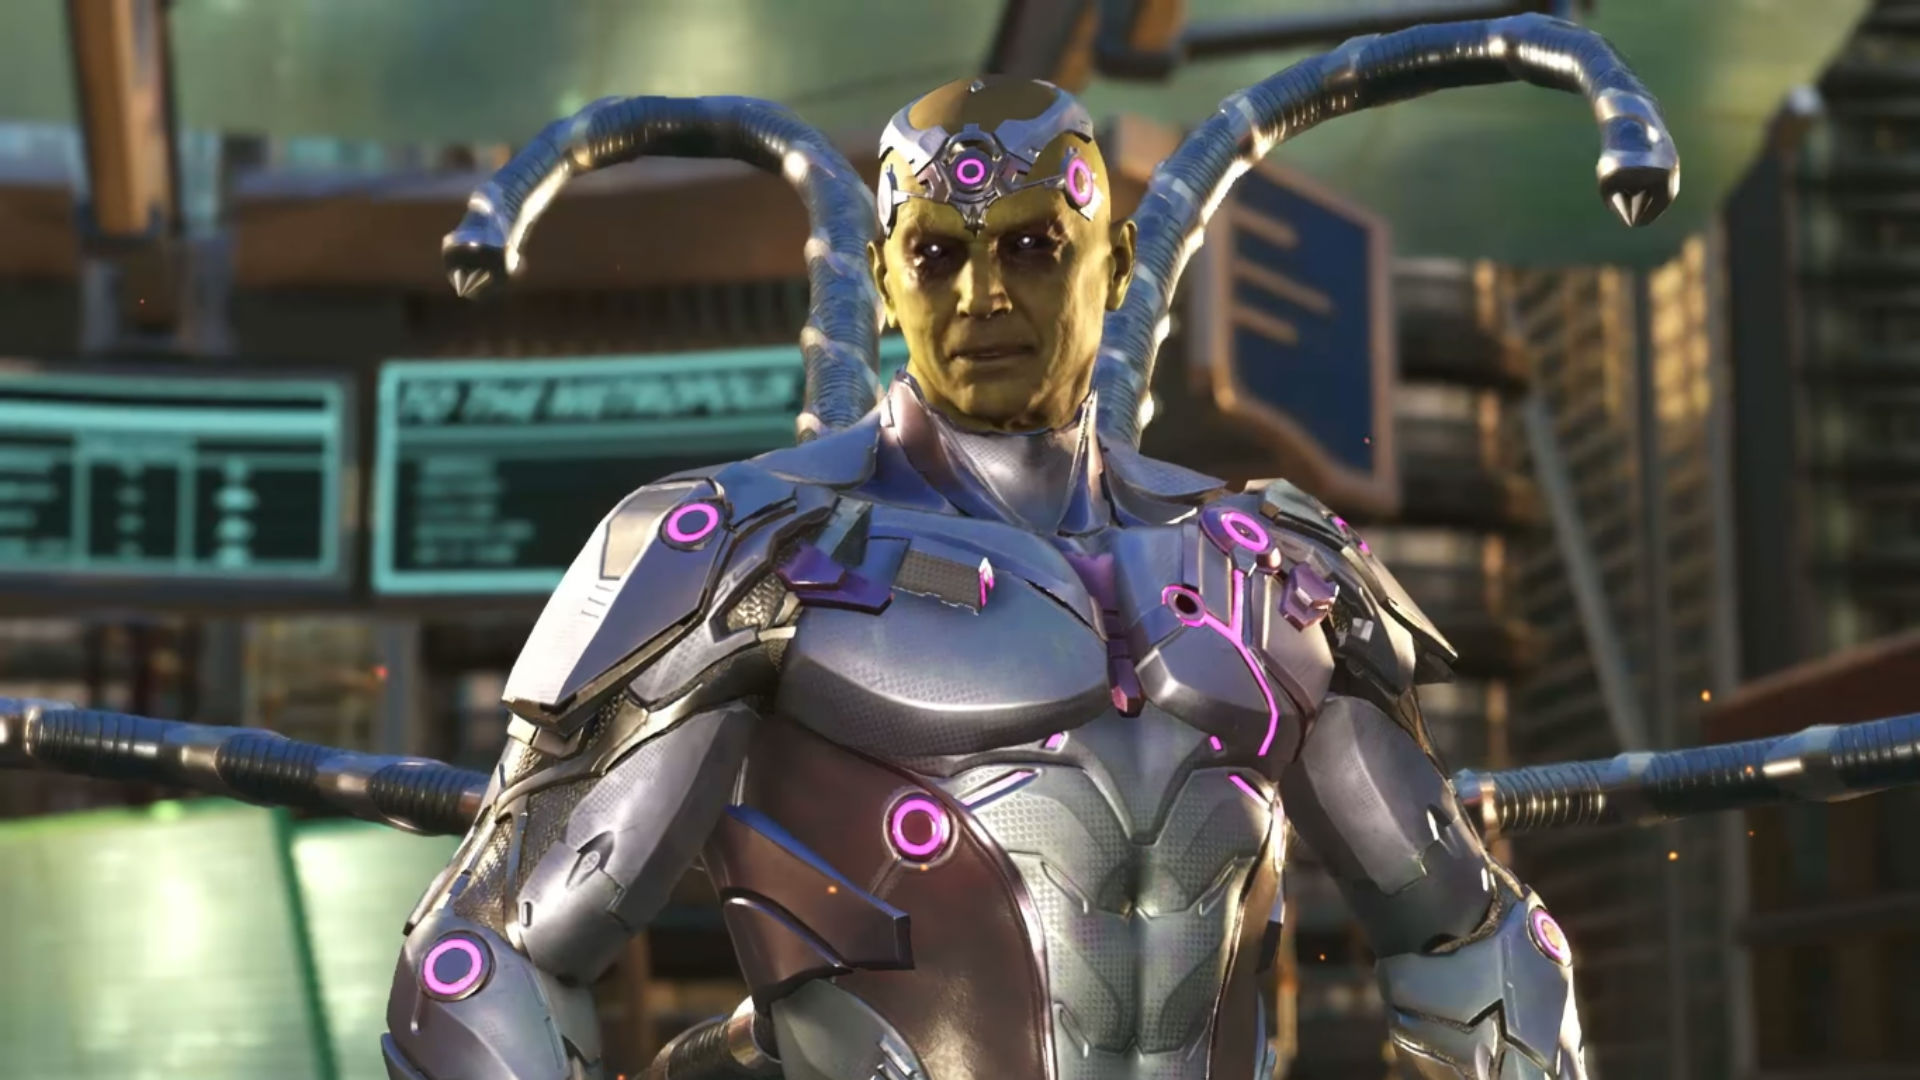 Brainiac is a tentacle monster in his full Injustice 2 gameplay trailer screenshot